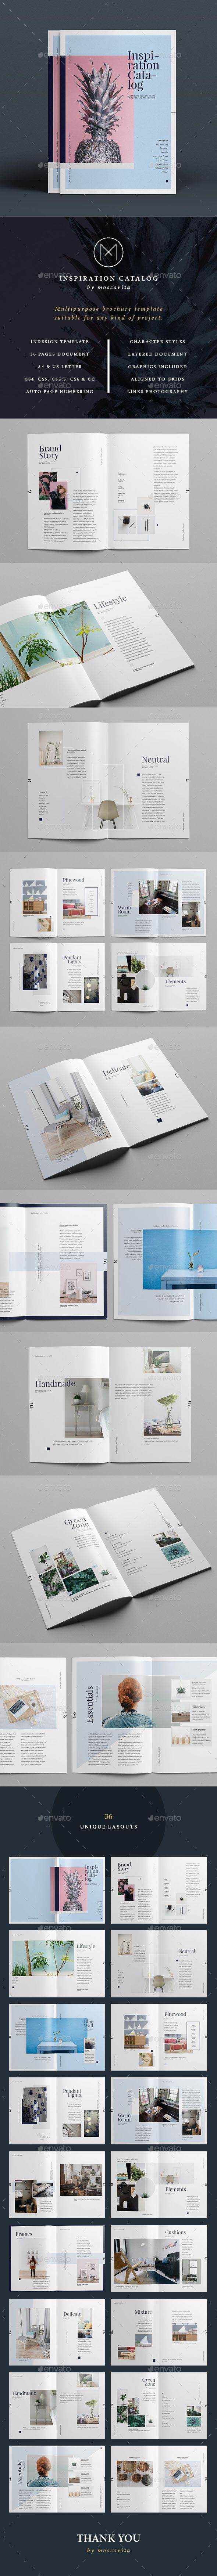 Inspiration Catalog  — InDesign Template #informational #catalog • Download ➝ https://graphicriver.net/item/inspiration-catalog/16420995?ref=pxcr